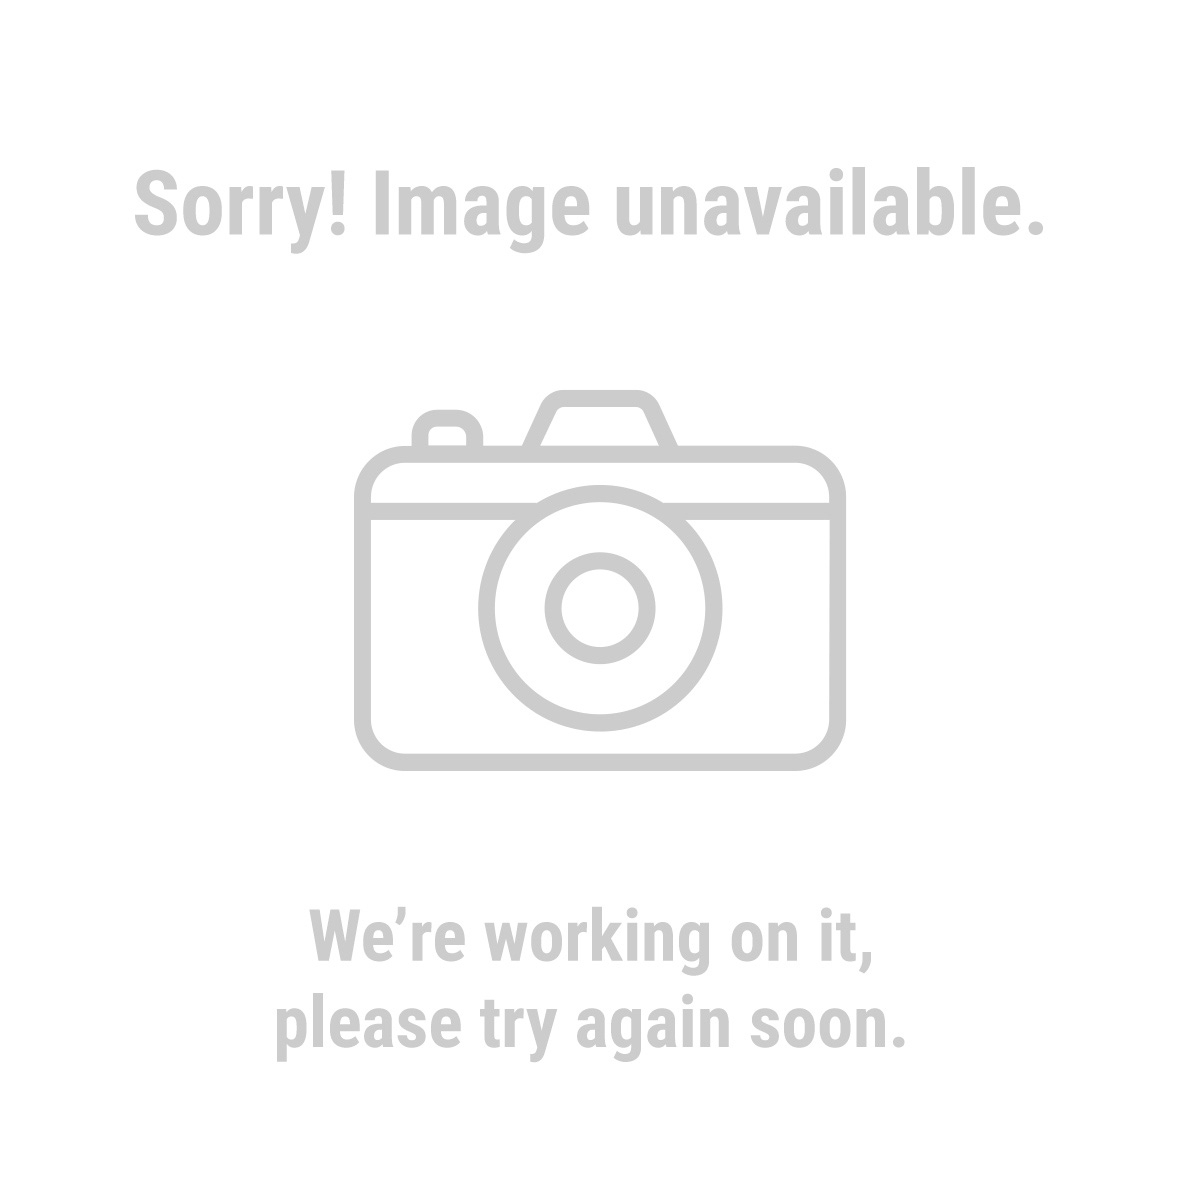 Haul Master Automotive 69673 3500 Lb. Step Bumper Receiver